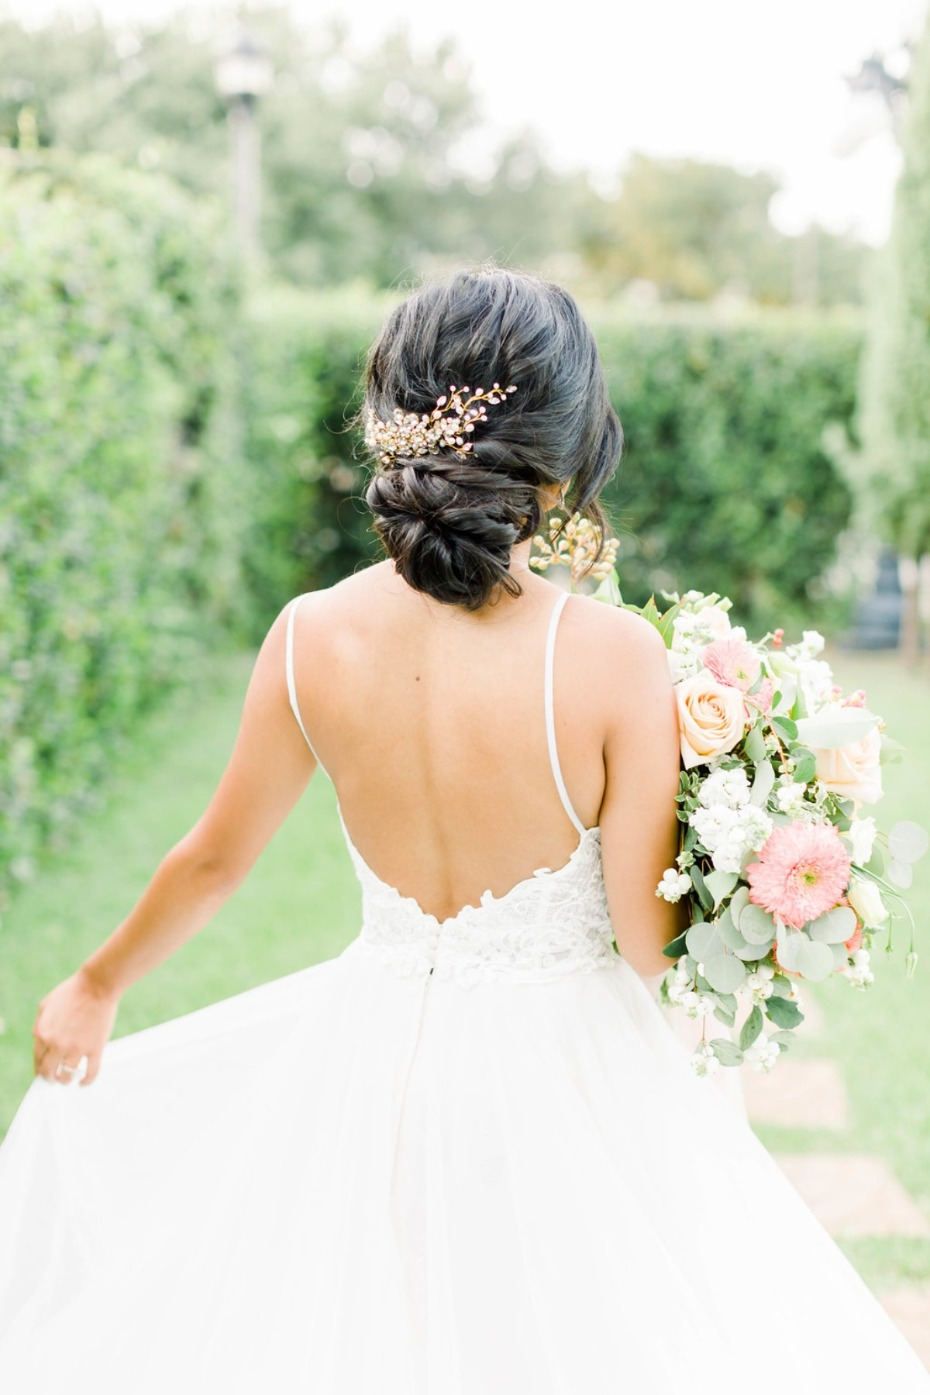 Wedding hair in a low bun